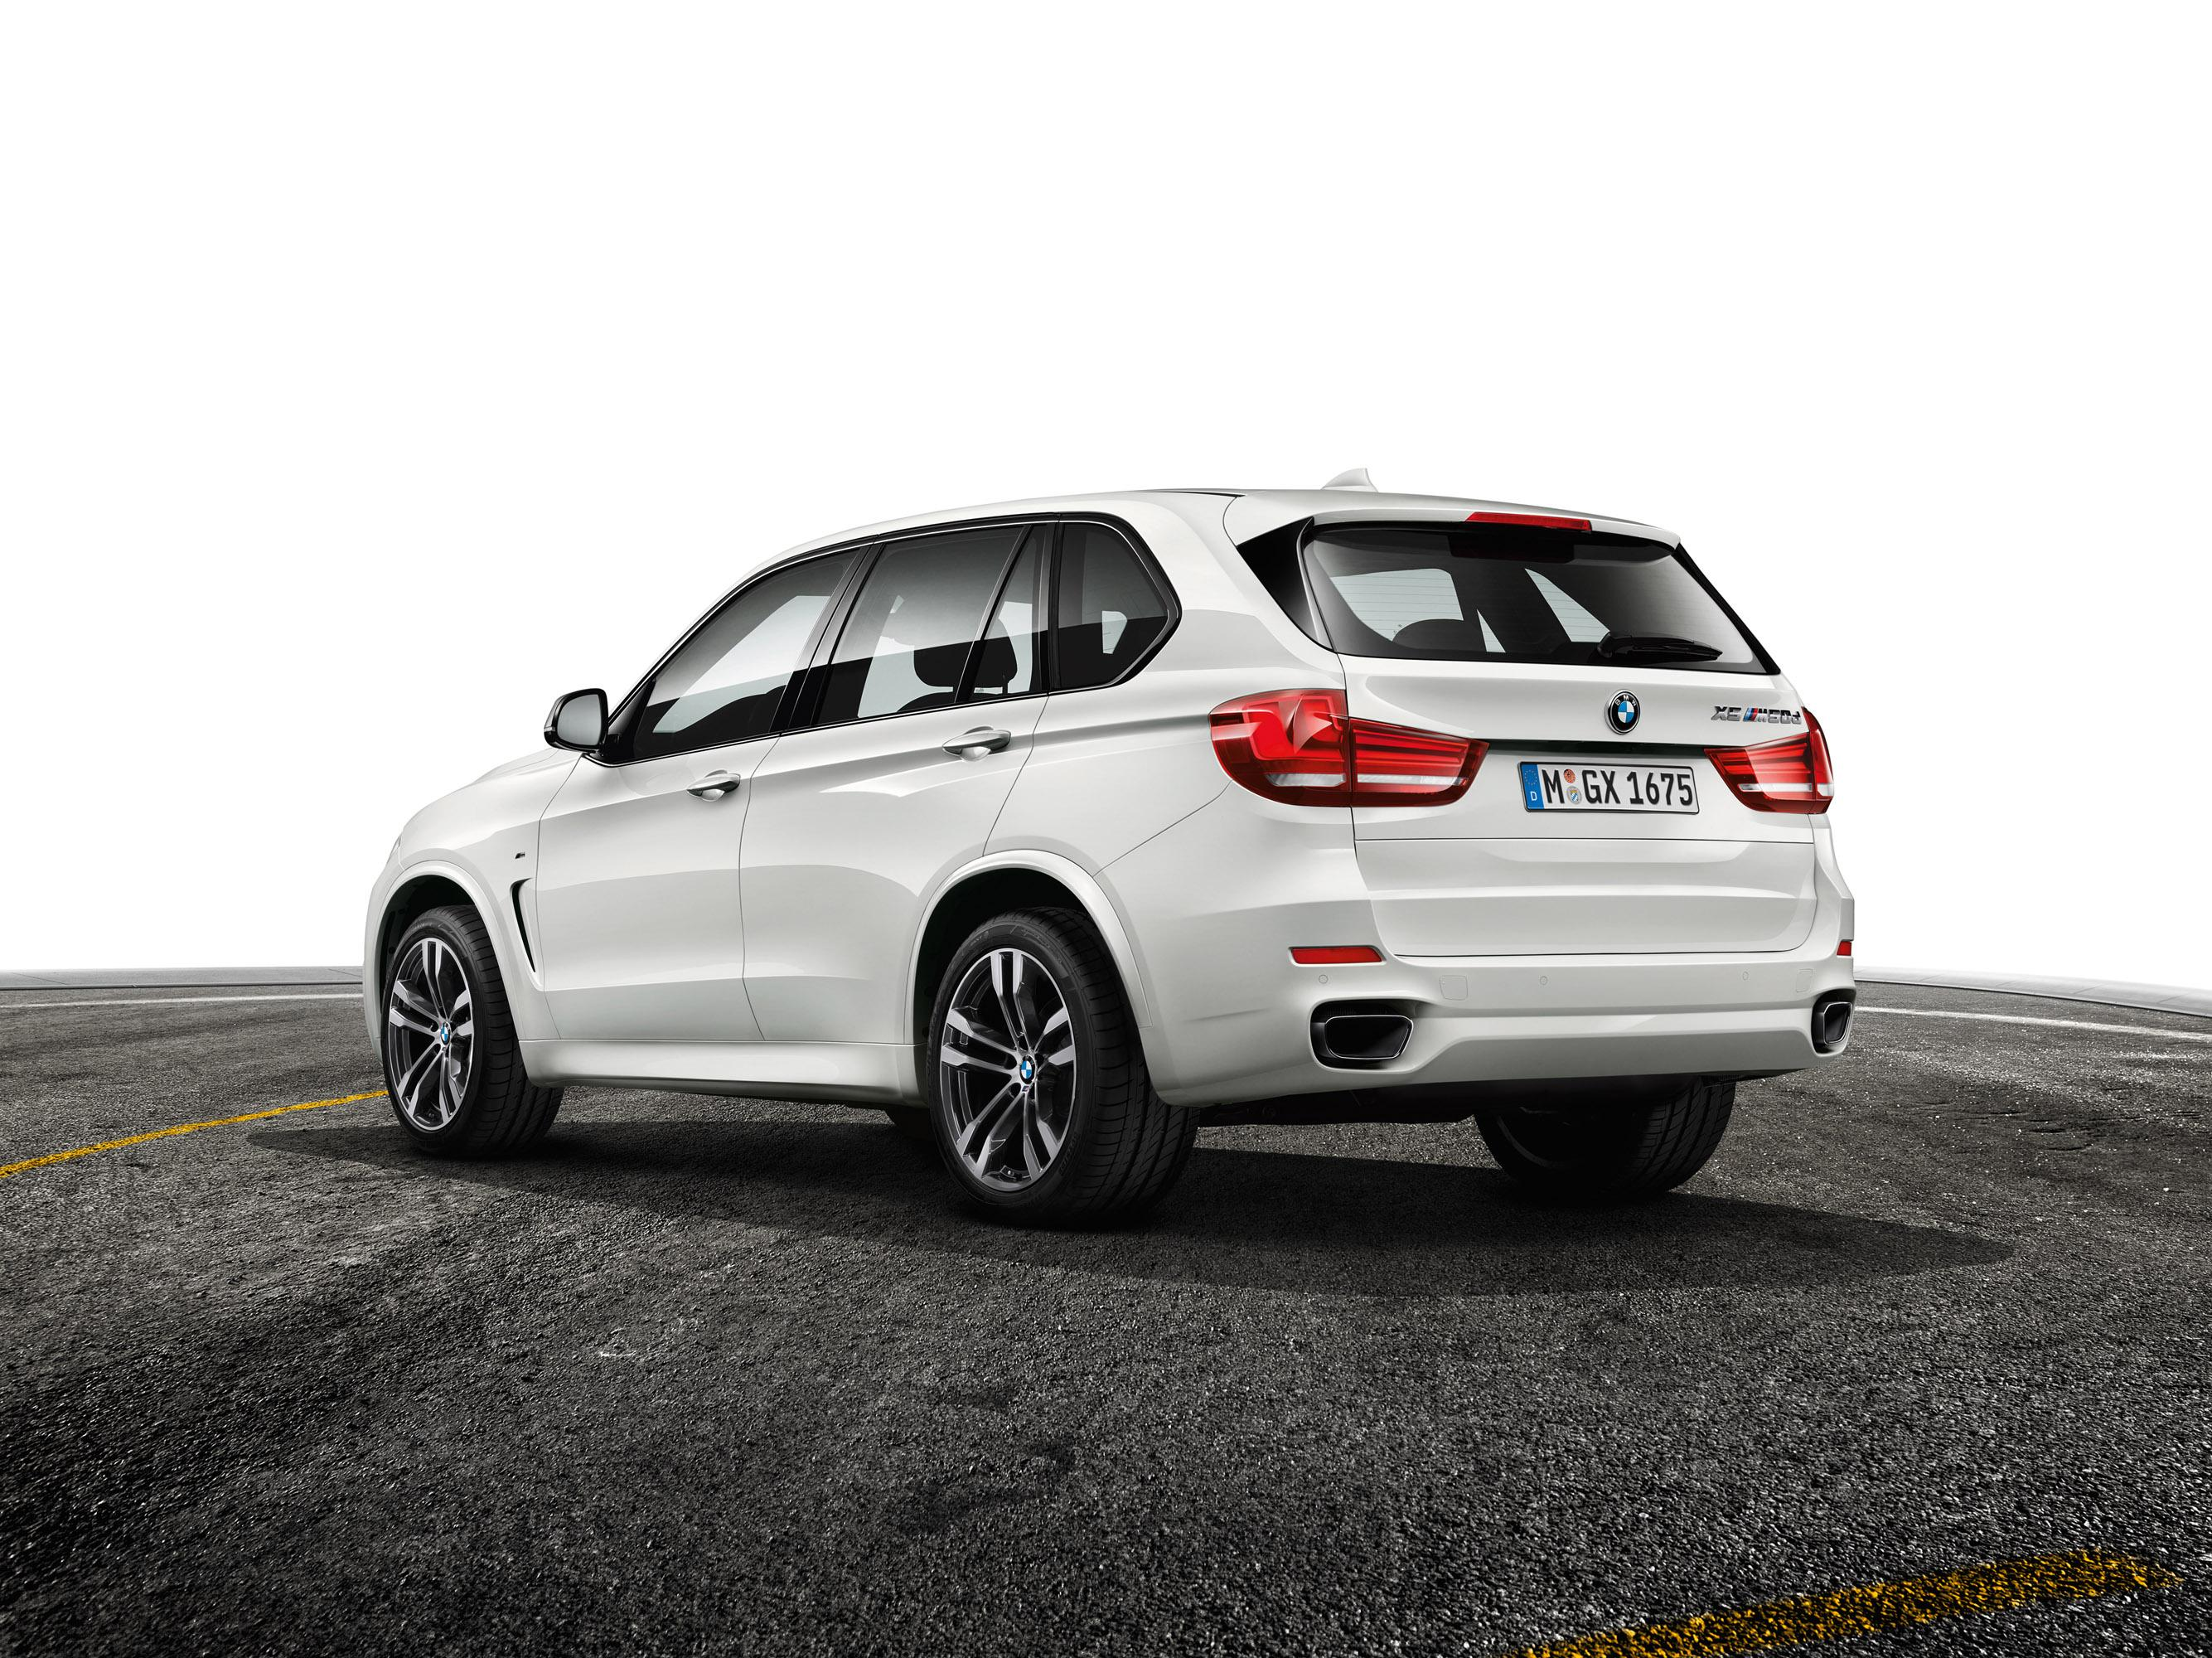 BMW X5 M50d F15 laptimes, specs, performance data